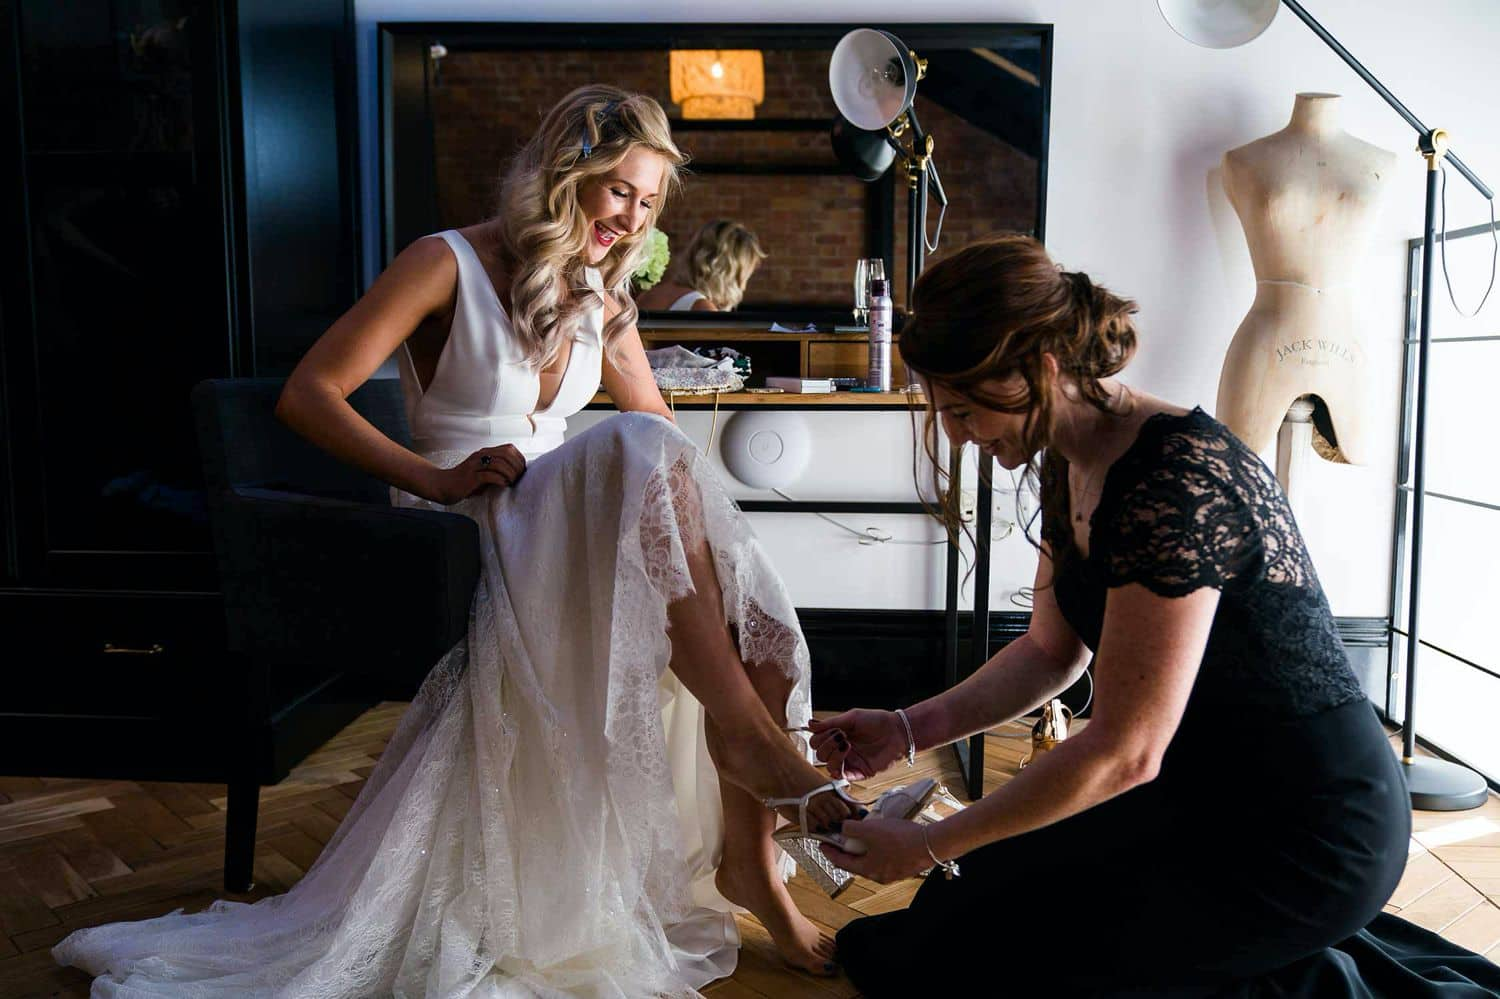 The mother of the bride helps her daughter put on her wedding shoes